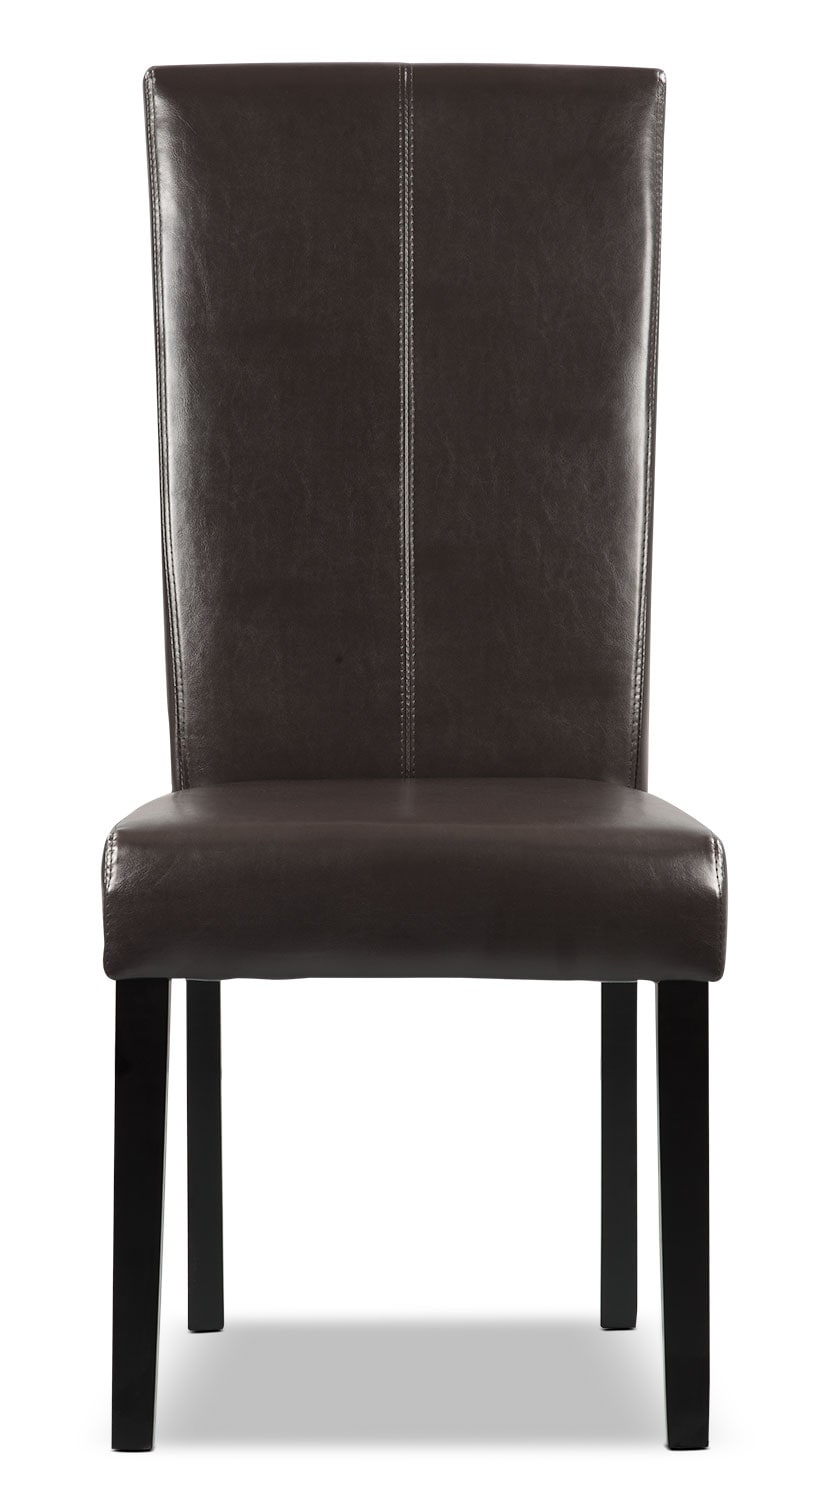 Brown faux leather dining chair the brick for Faux leather dining chairs